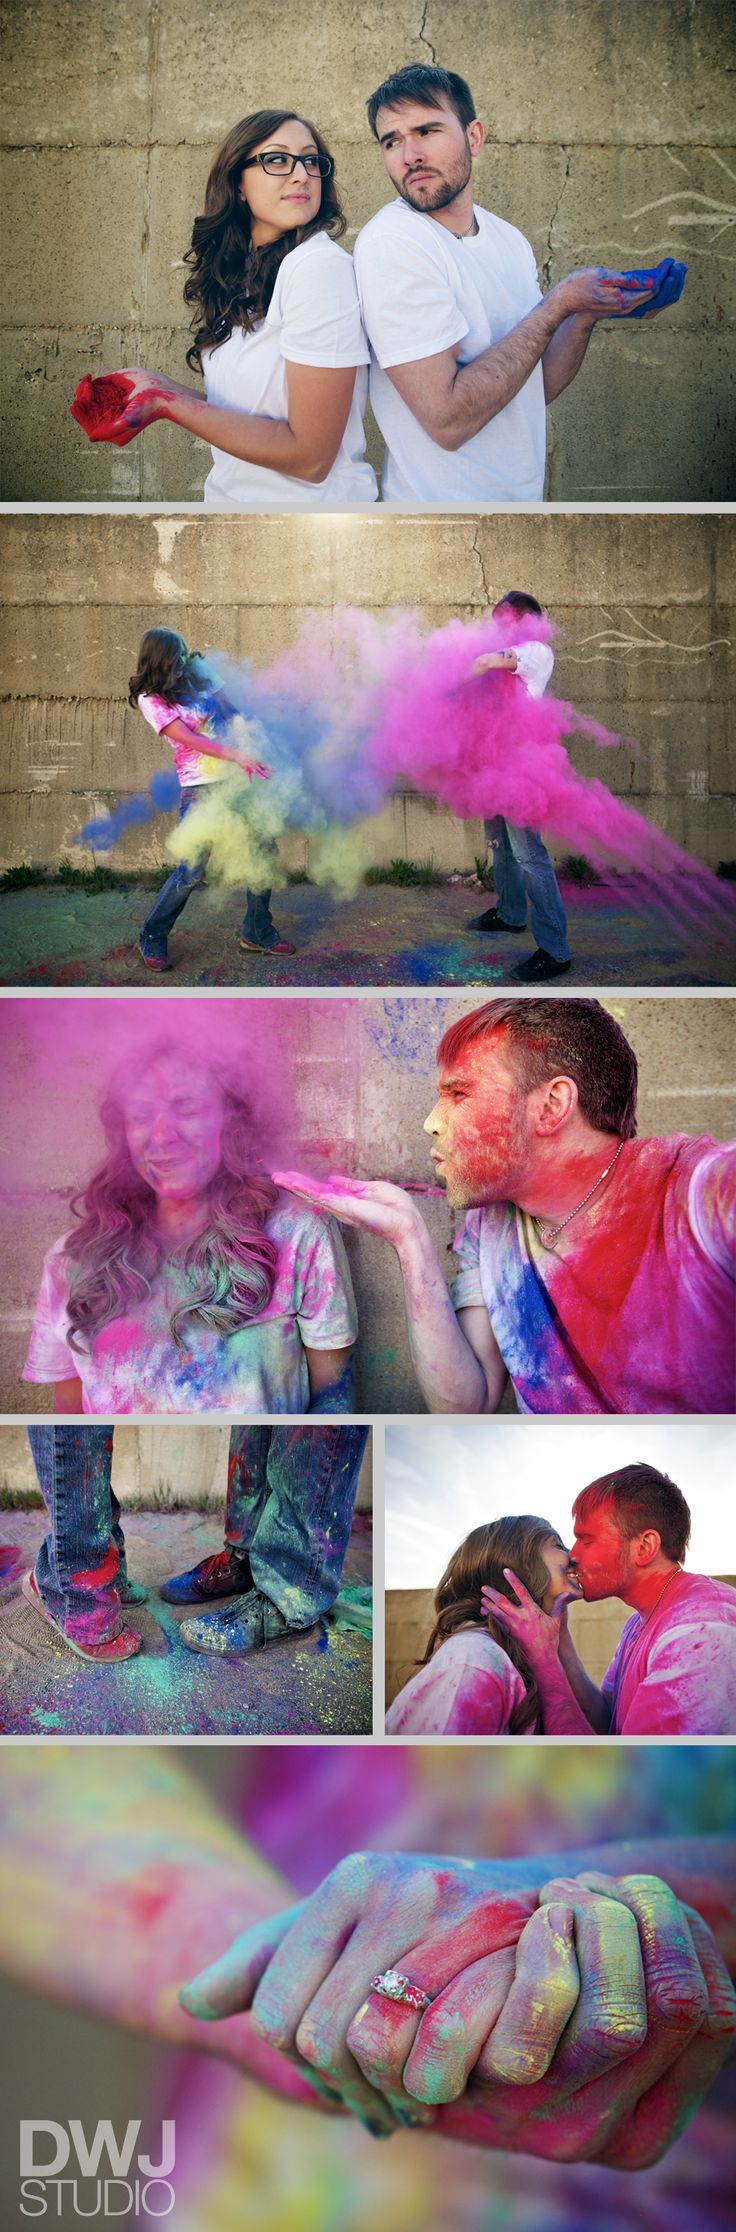 : Engagement Pictures, Photos Ideas, Photo Ideas, Engagement Photos, Engagement Pics, Photos Shoots, Engagement Shoots, Photography Couple, Colors War